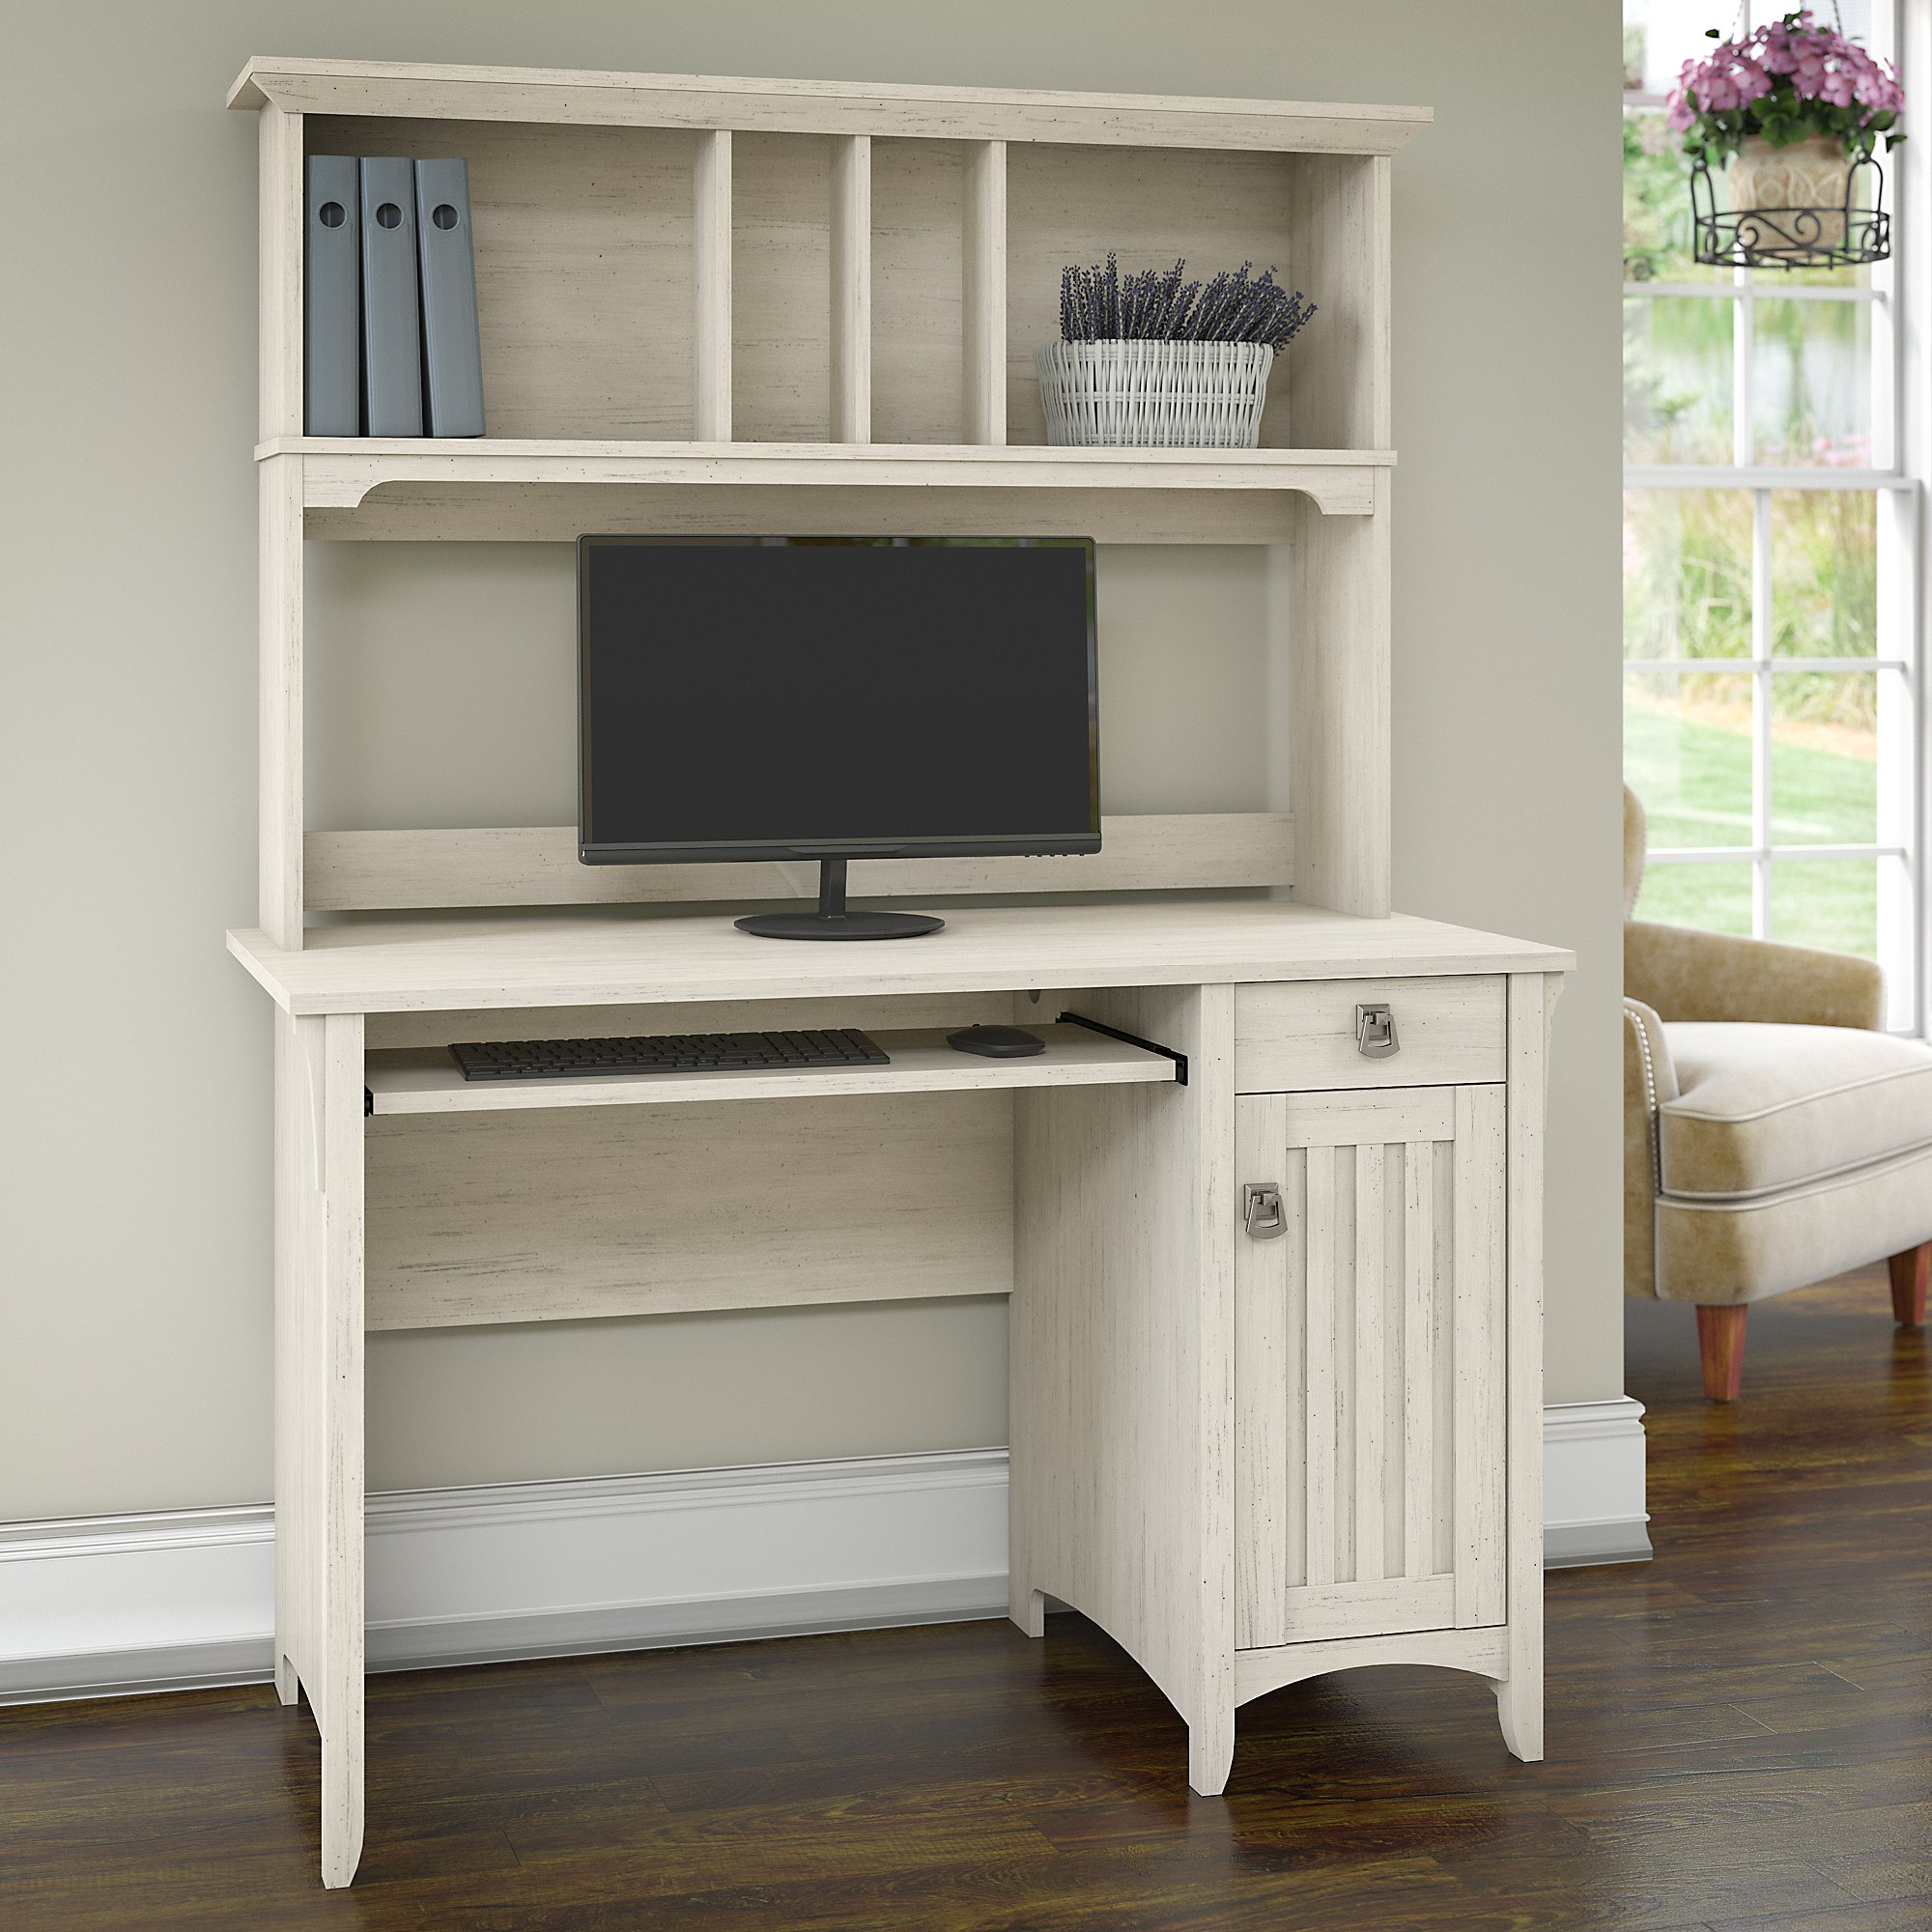 Bush Furniture Salinas Mission Style Desk with Hutch in Antique White